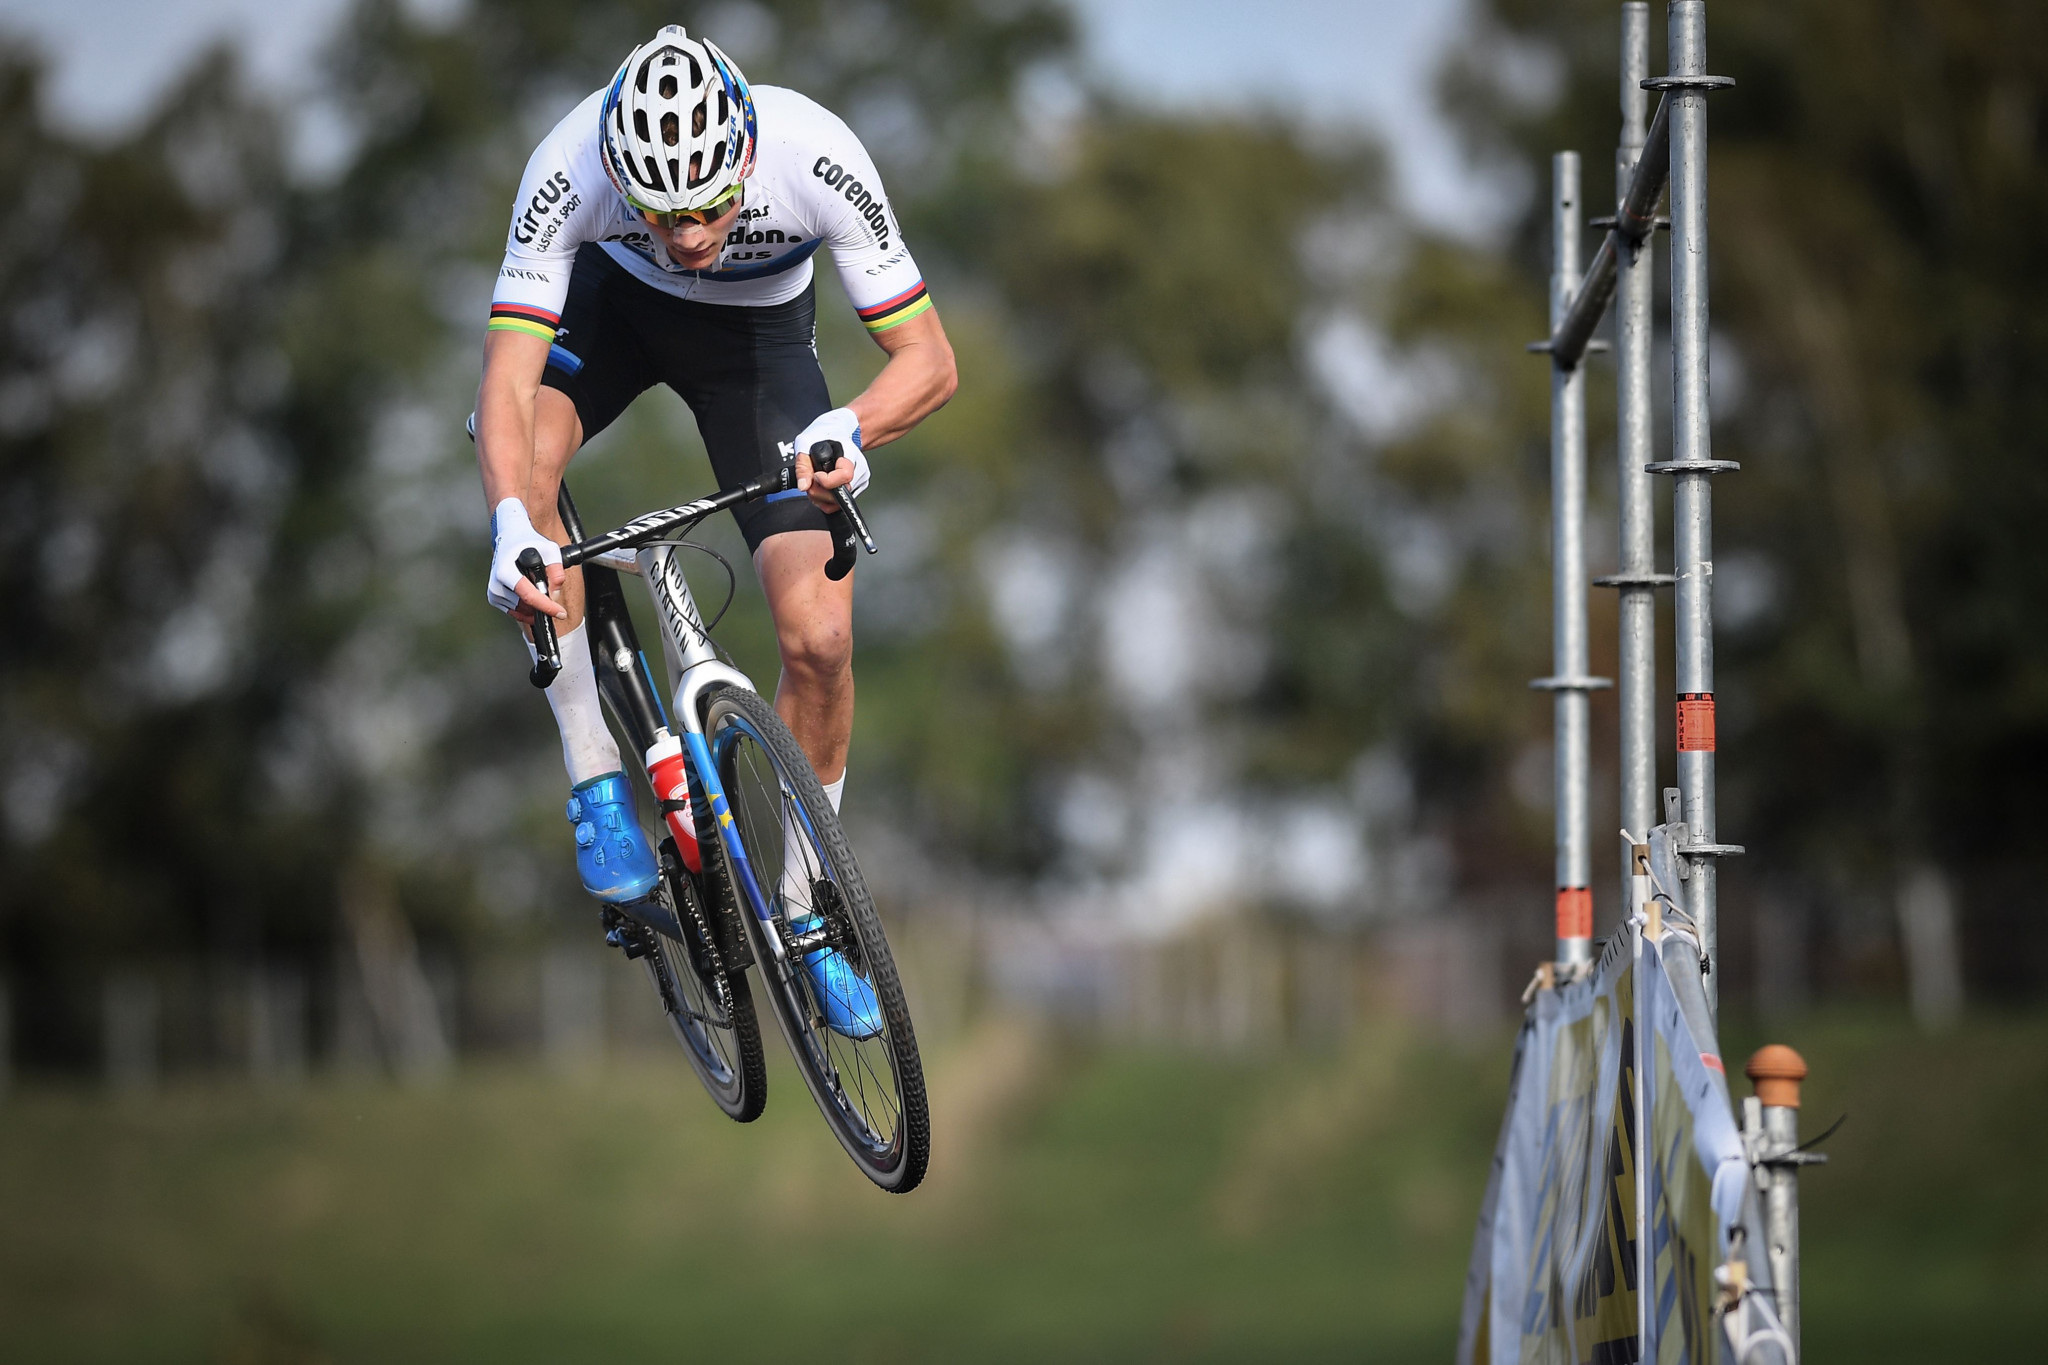 Van der Poel and Worst lead medal blitz for Dutch hosts at Cyclo-Cross European Championships